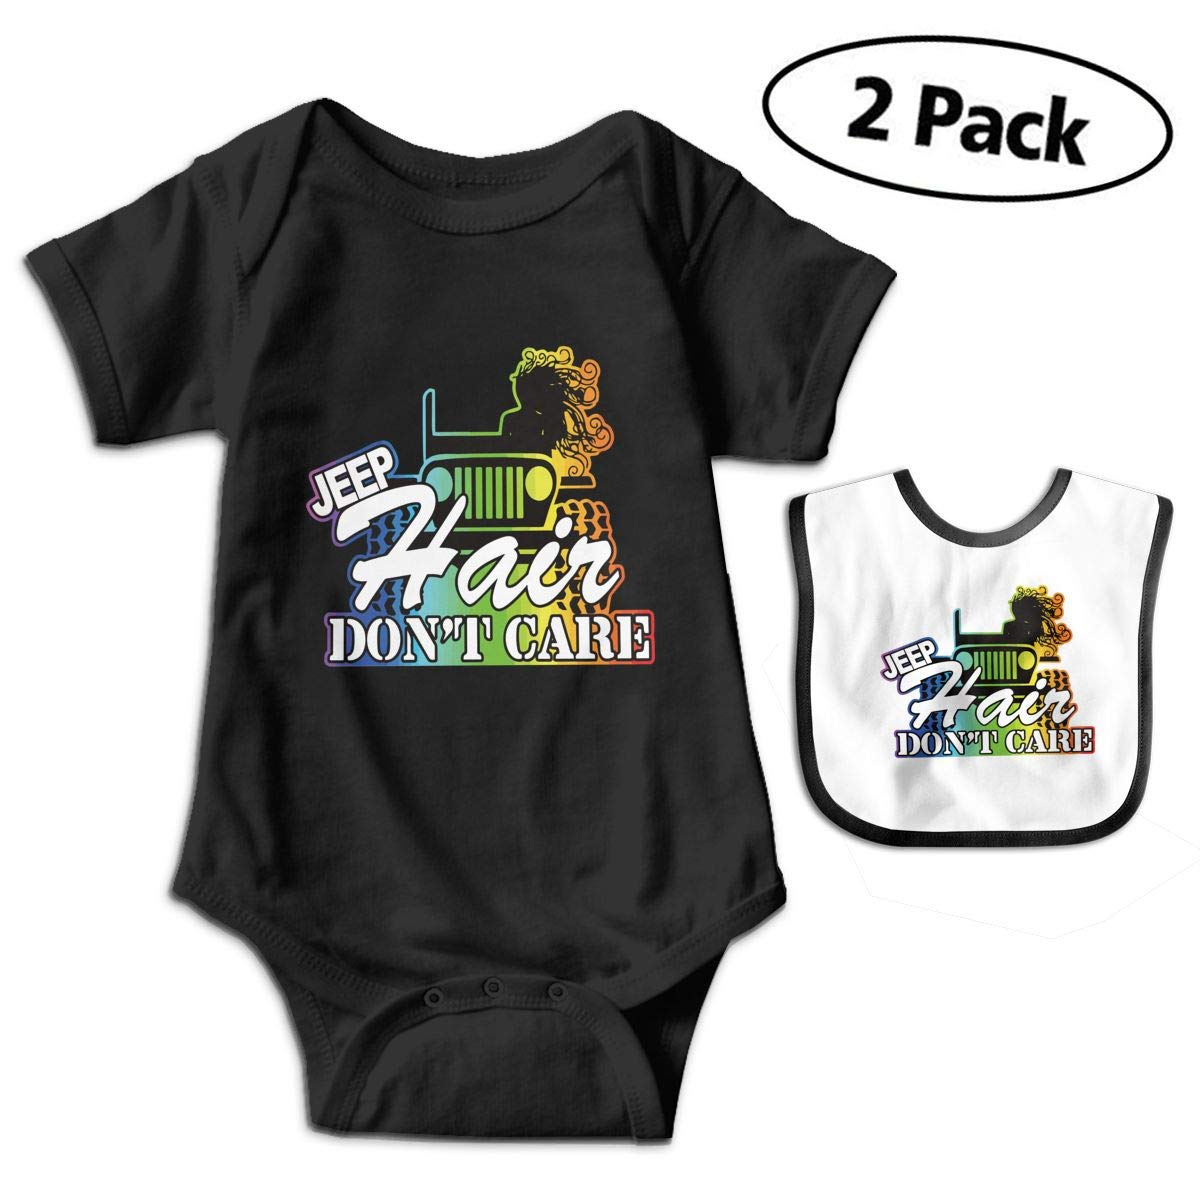 Jeep Hair Dont Care Infant Baby Boys Girls Short Sleeve Romper Bodysuit Outfit Clothes